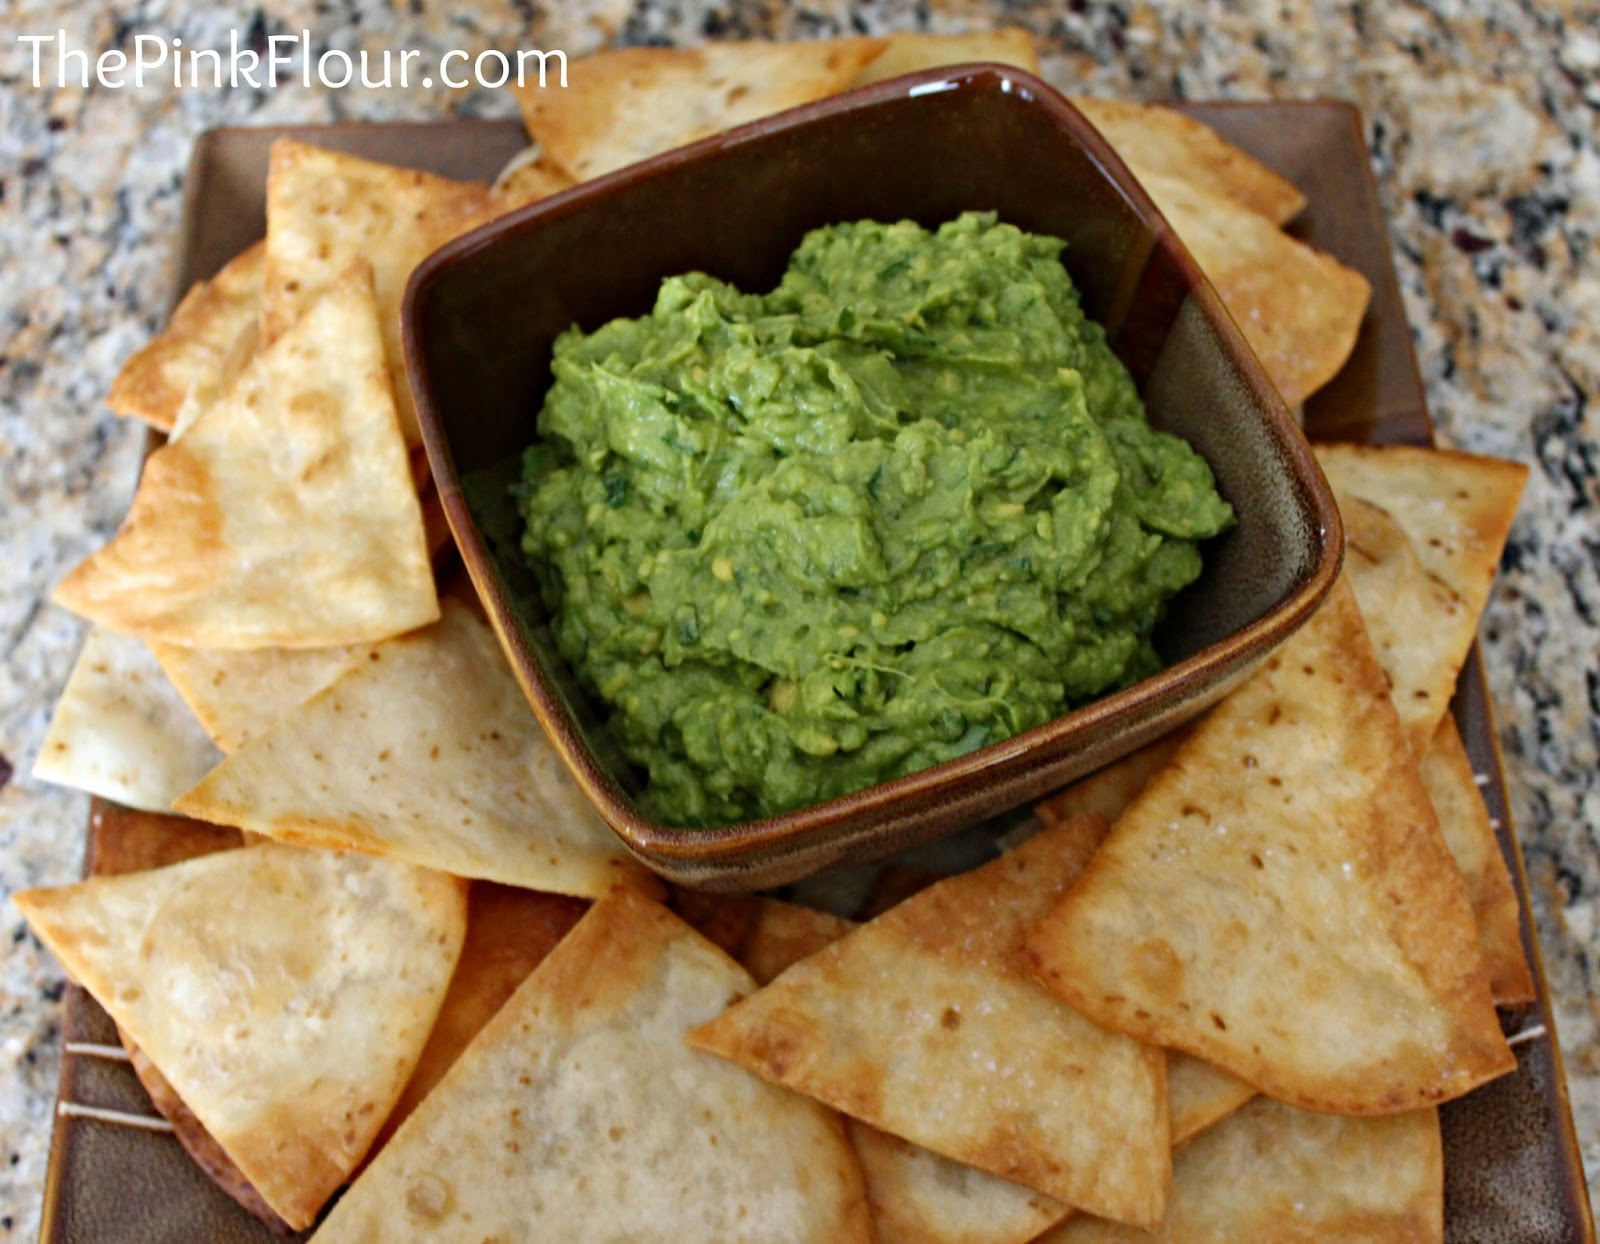 My favorite Guacamole with homemade Tortilla Chips